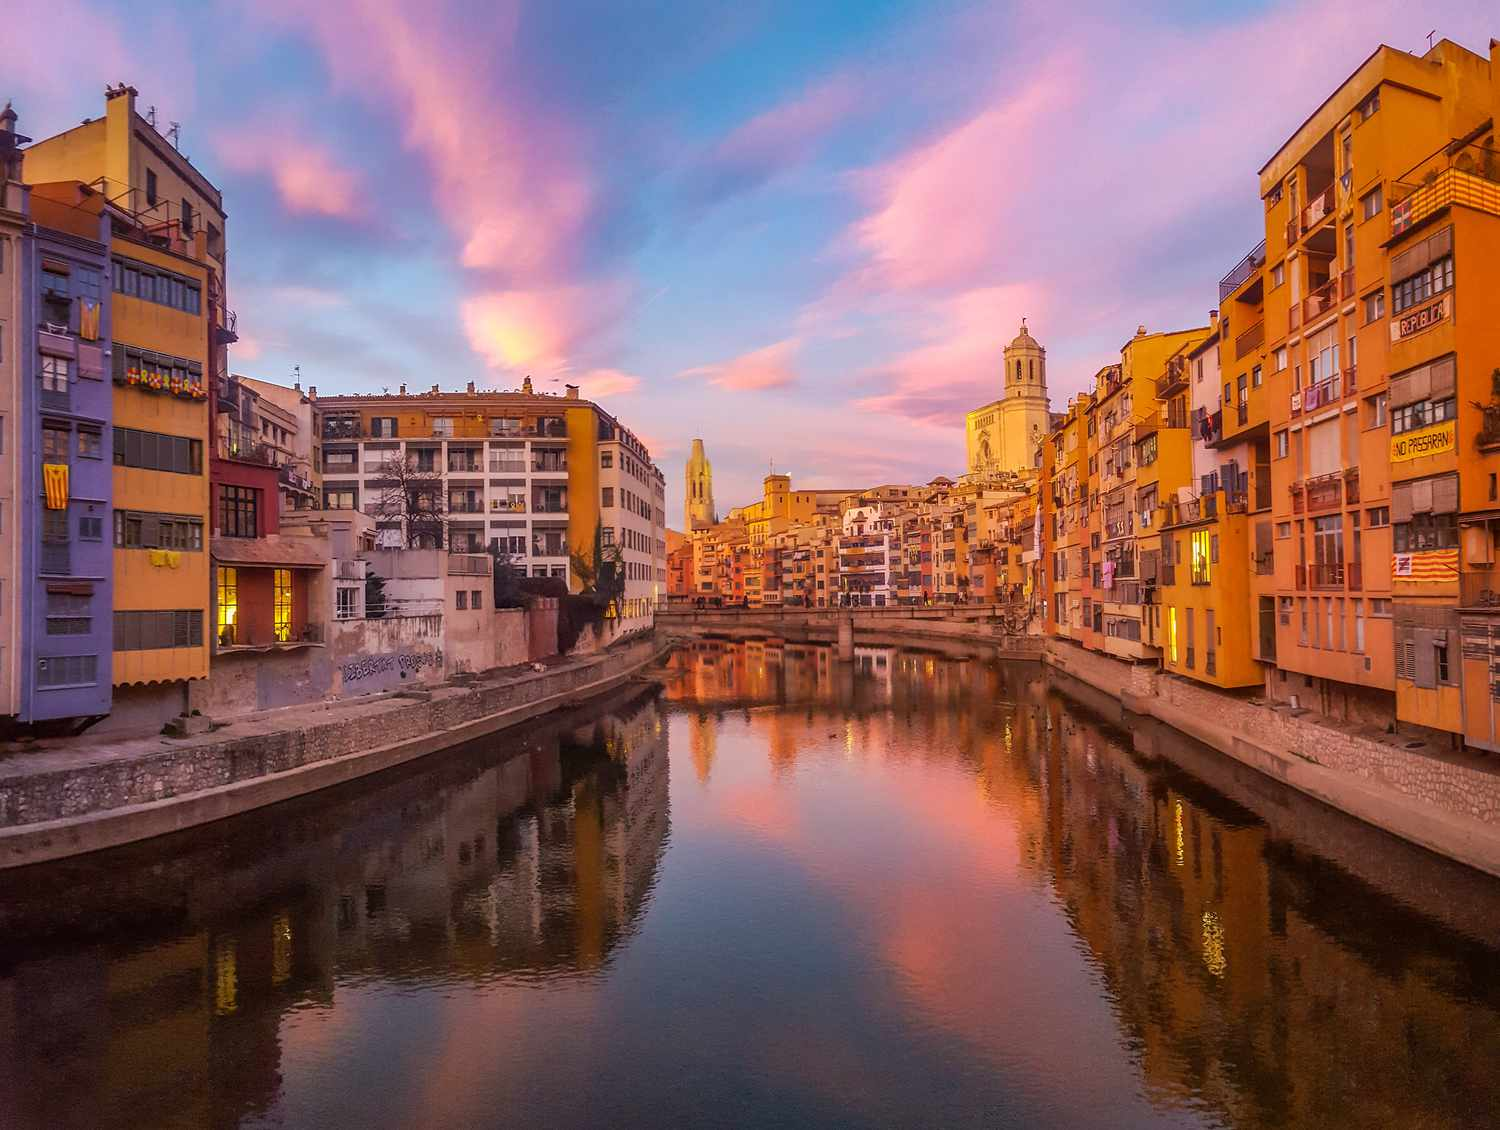 A colorful sunset in Girona, Spain